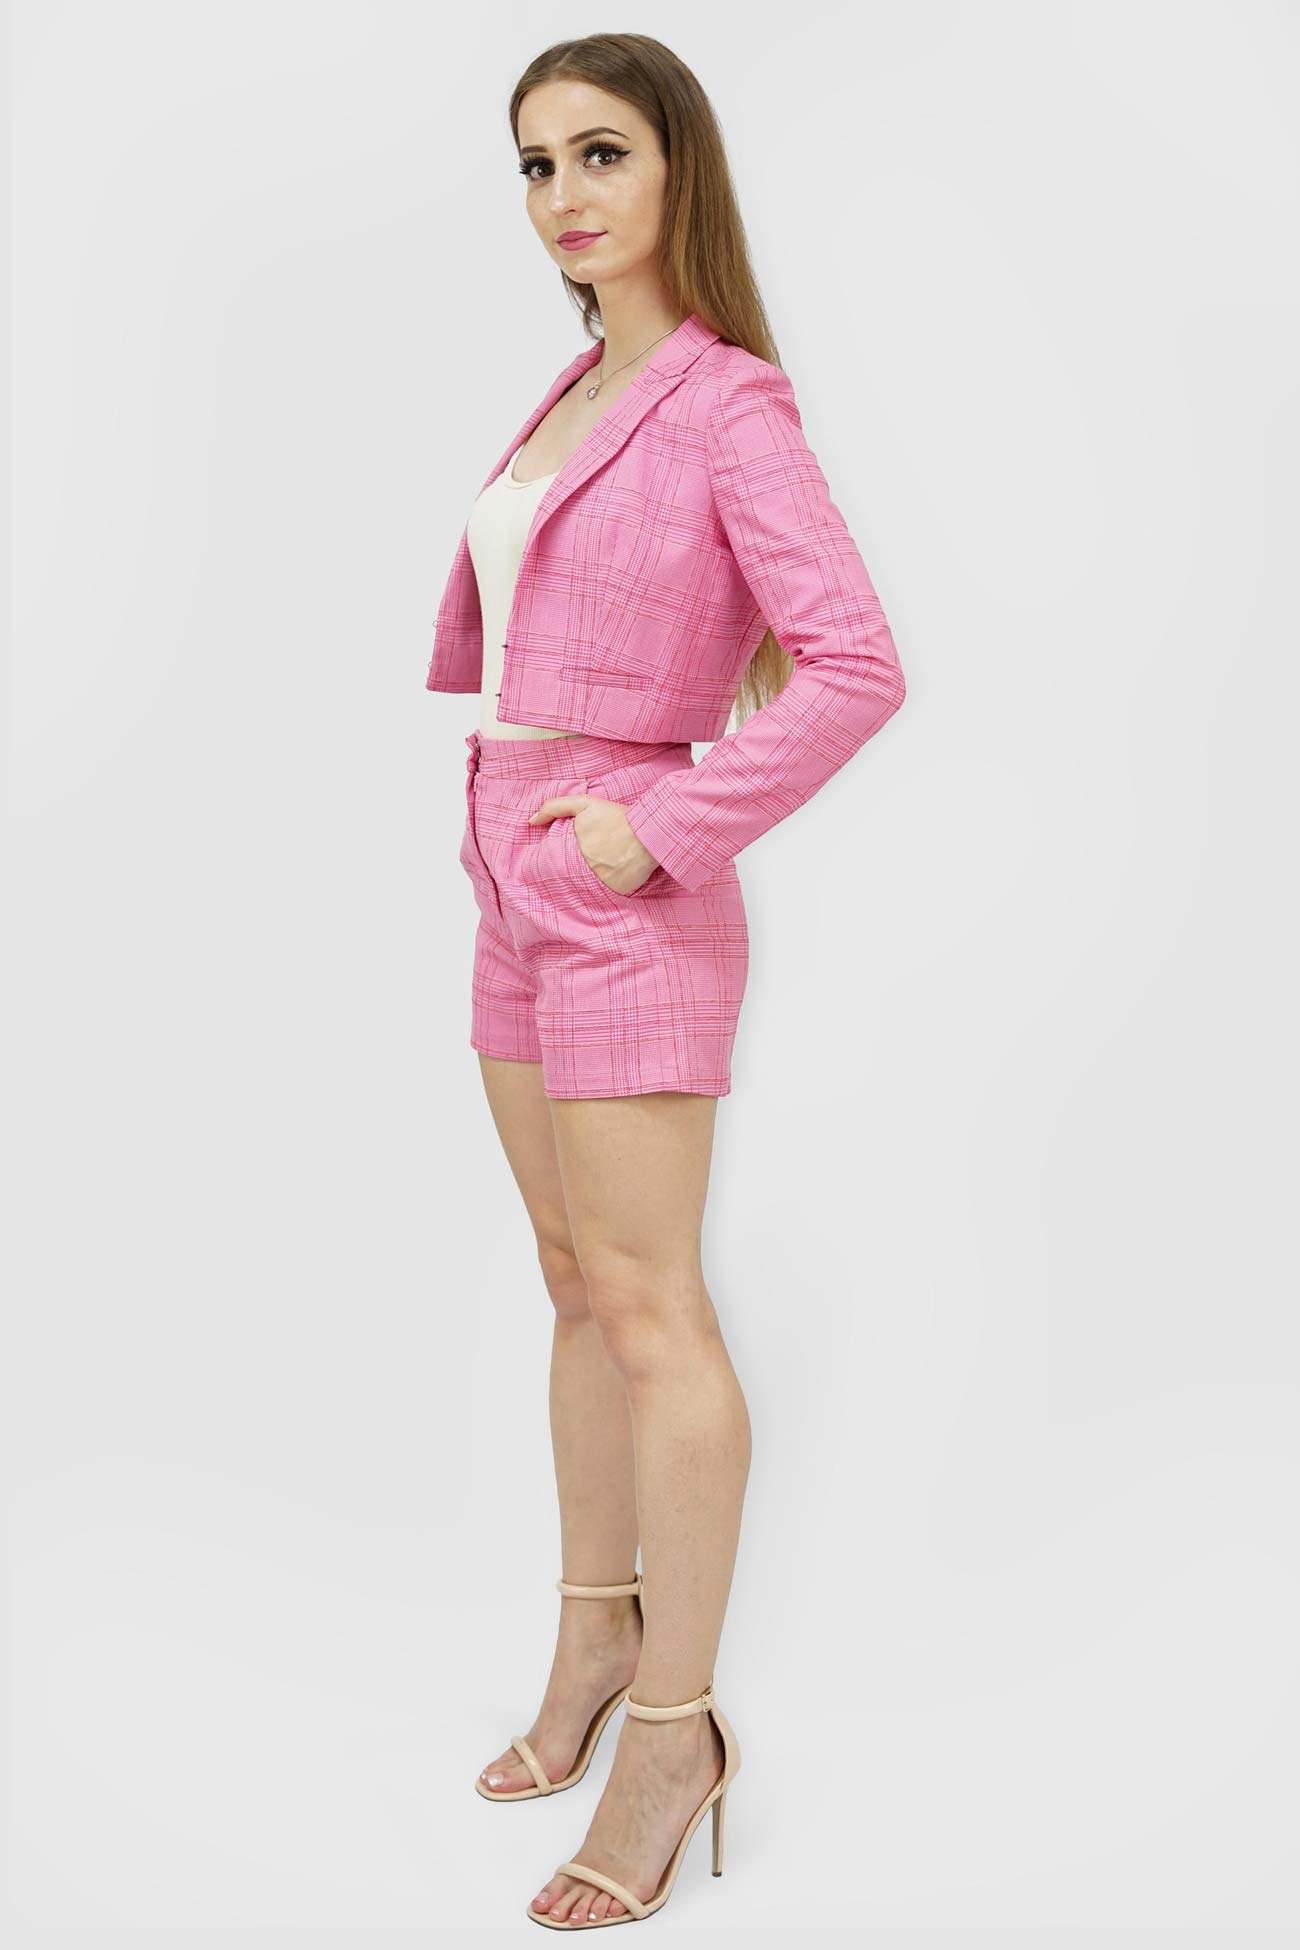 Blazers | Candy Plaid Open Cropped Blazer_2 | Style & Suit